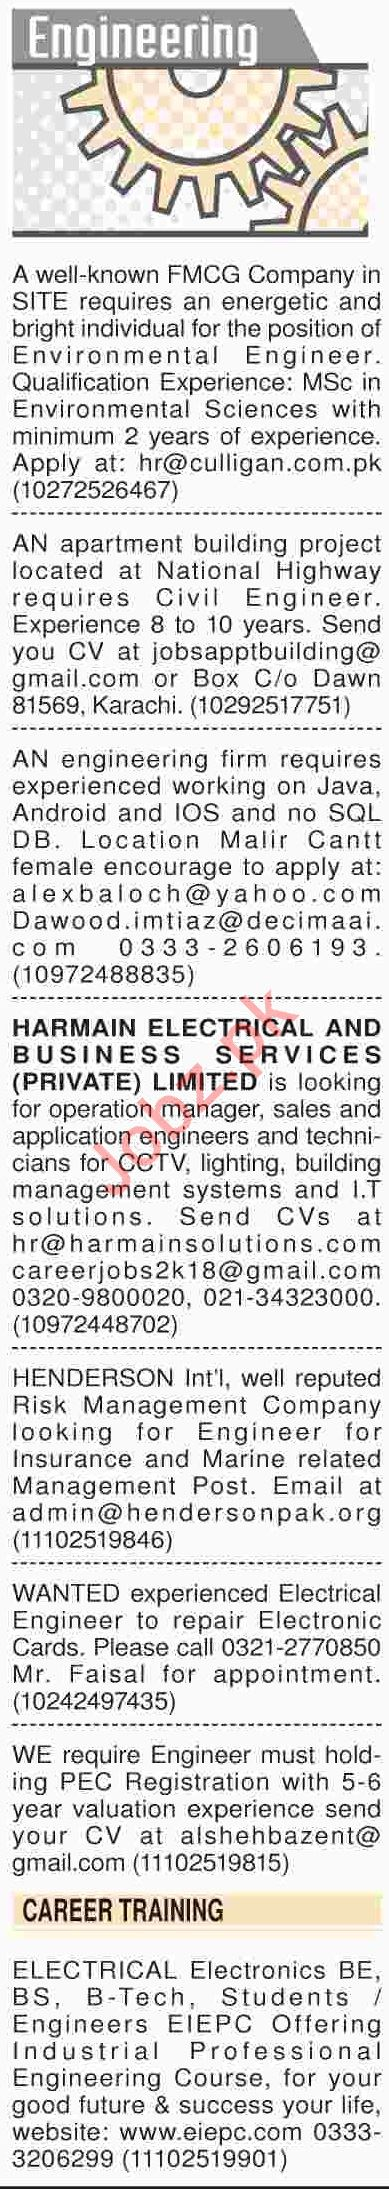 Dawn Sunday Newspaper Engineering Classified Jobs 27/01/2019